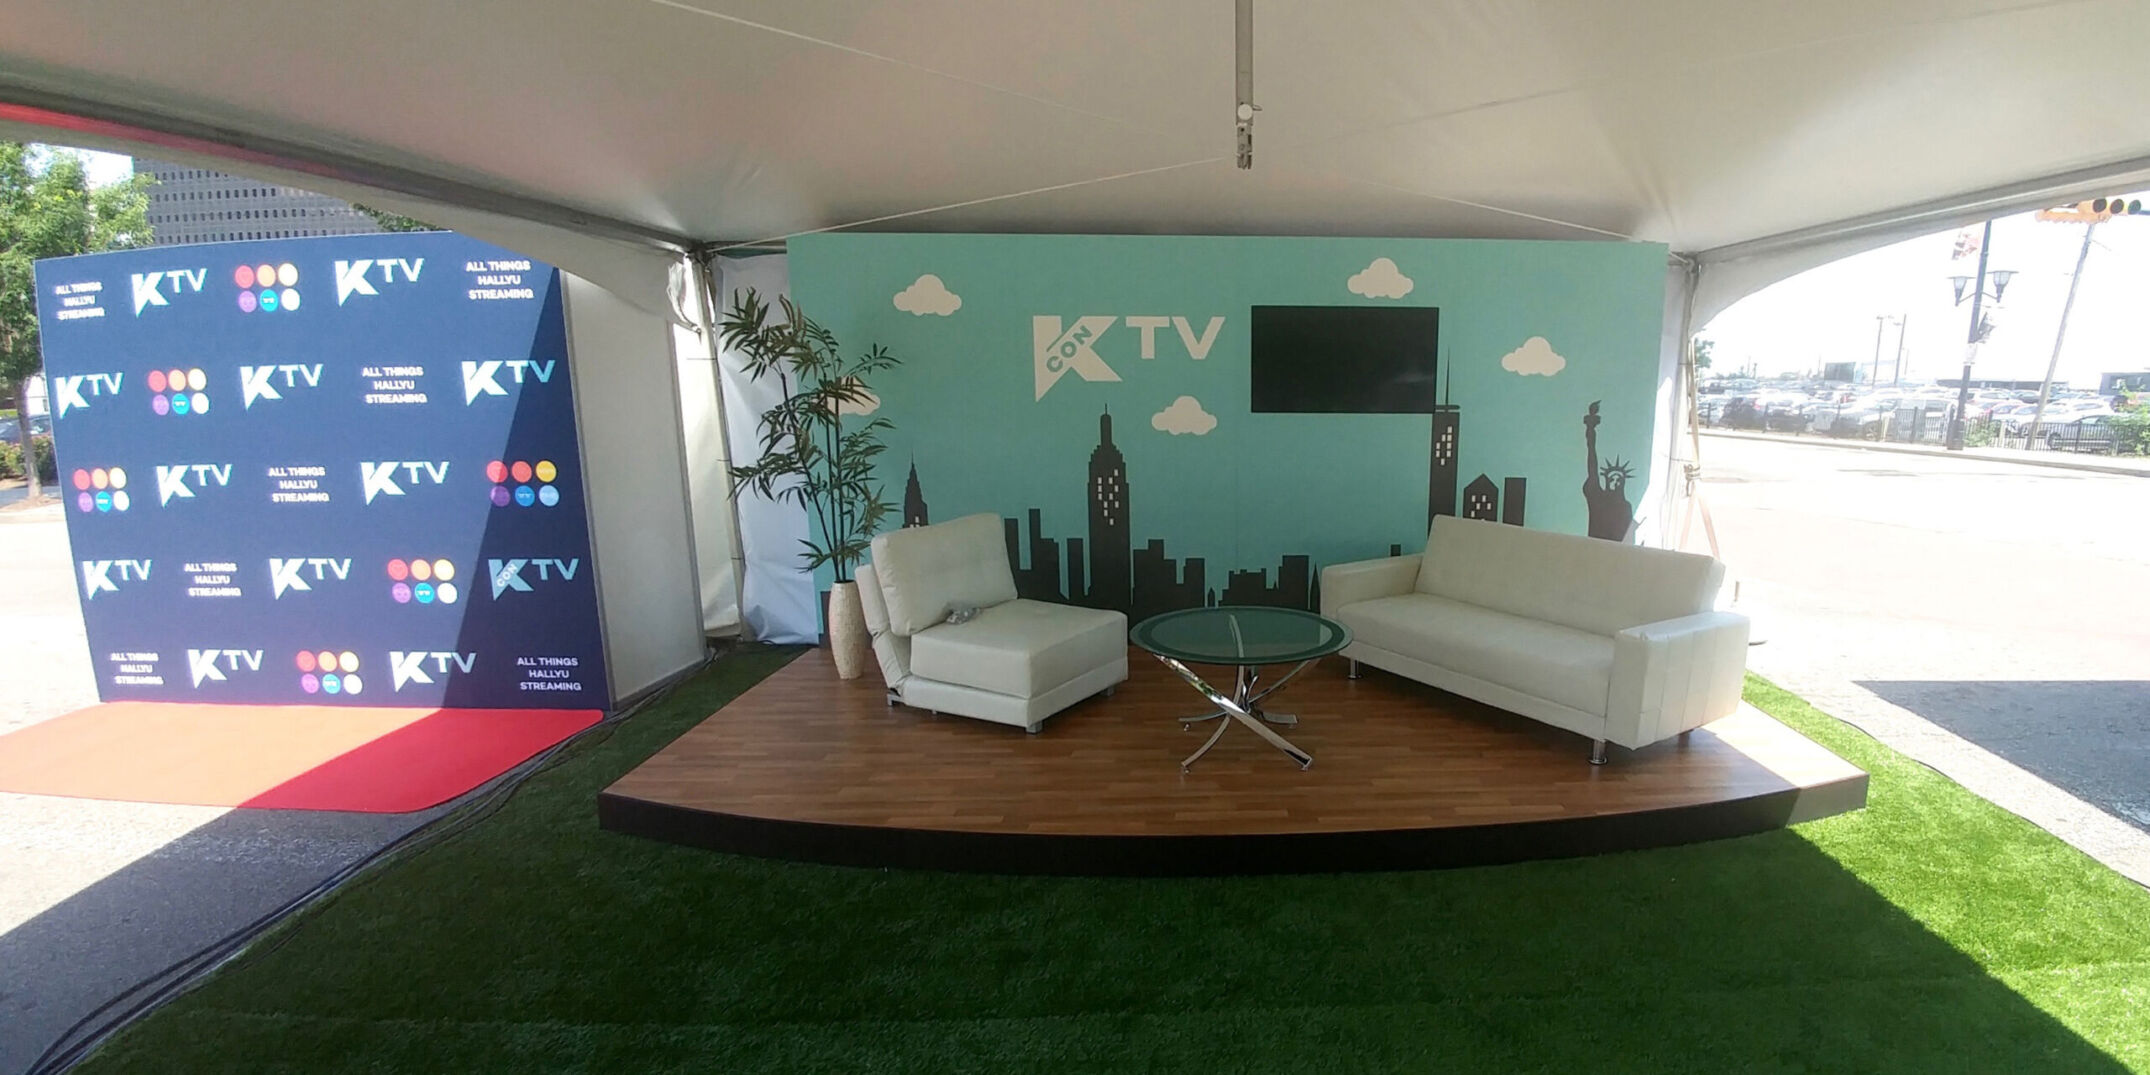 Outdoor TV set stage for Kcon inside tent with graphic wall for intros